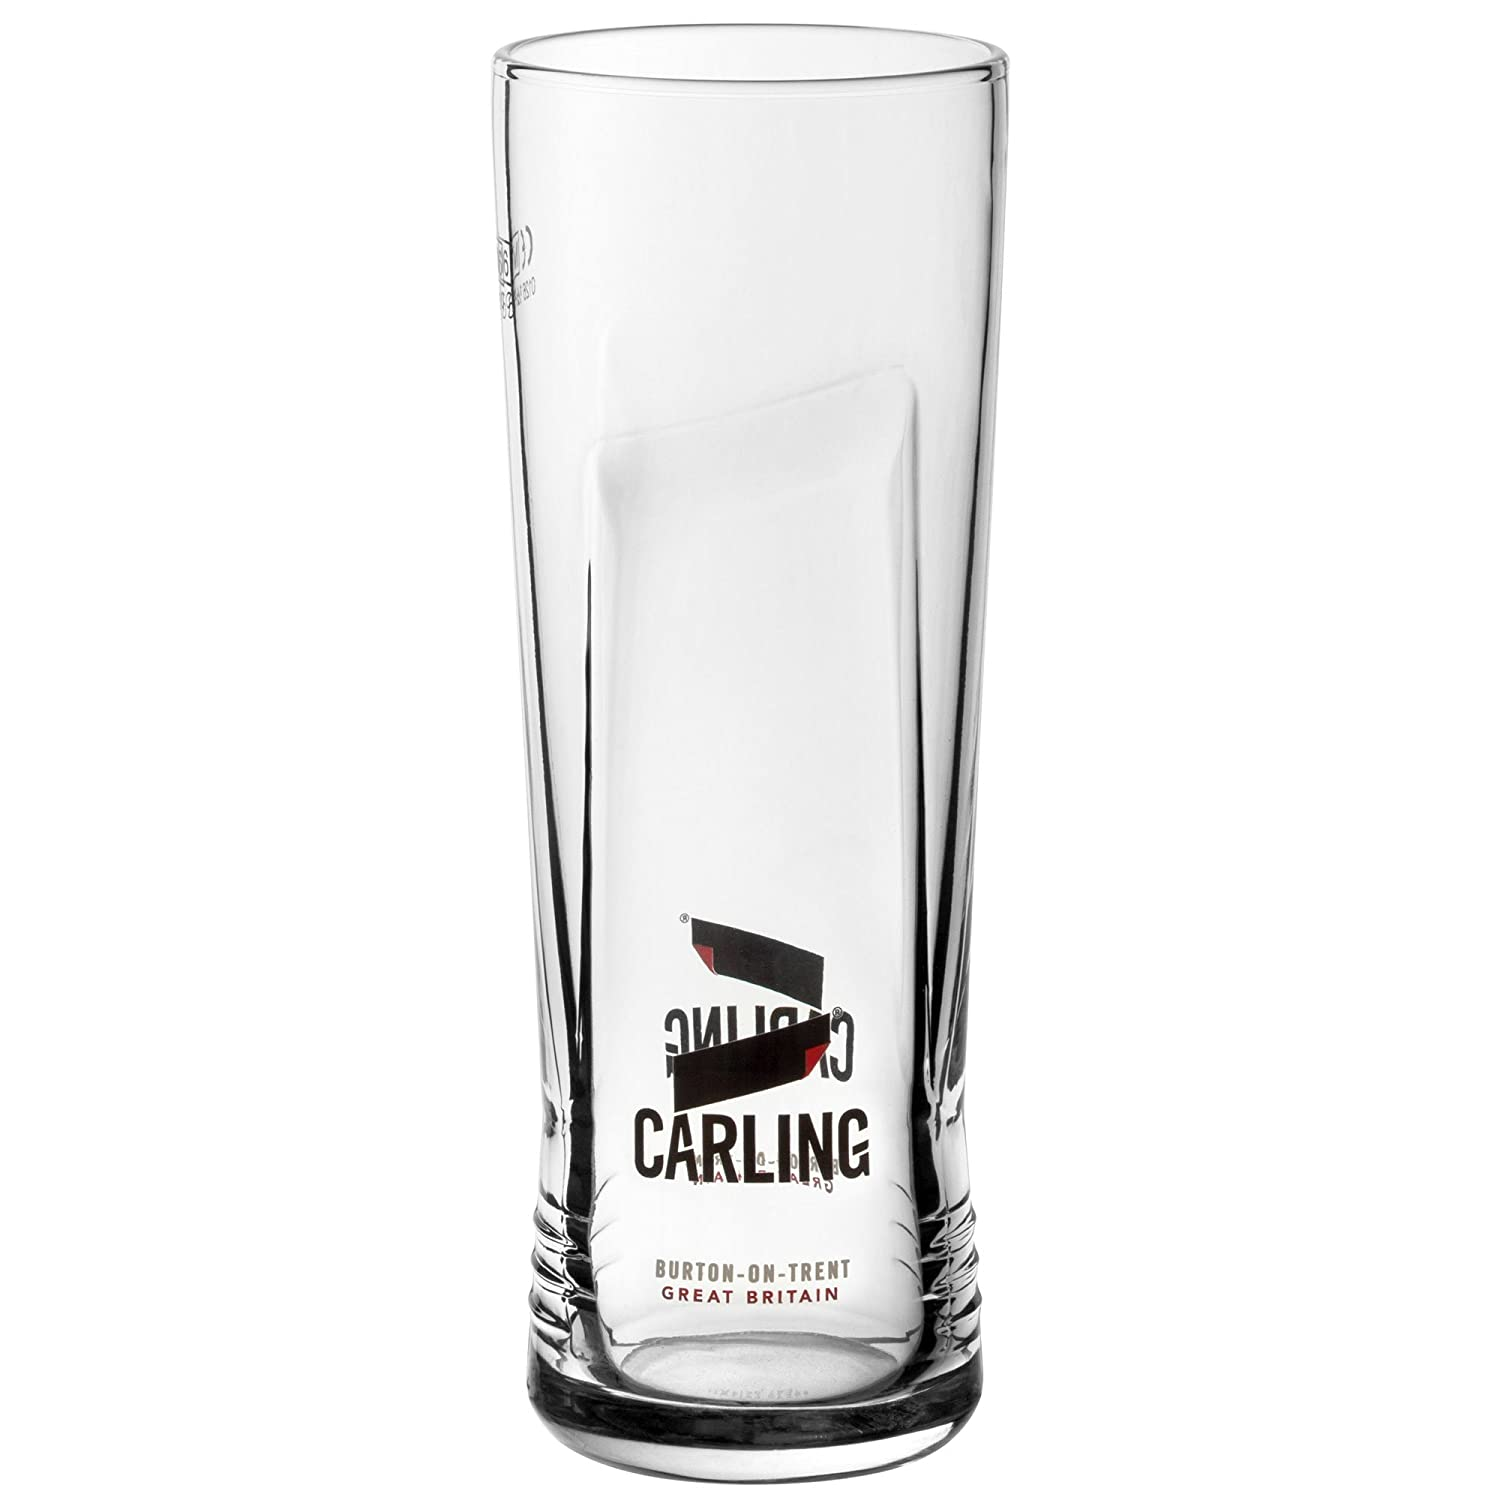 Carling Pint Glasses CE 20oz / 568ml - Case of 24 - Branded Carling Glasses, Carling Beer Glasses drinkstuff